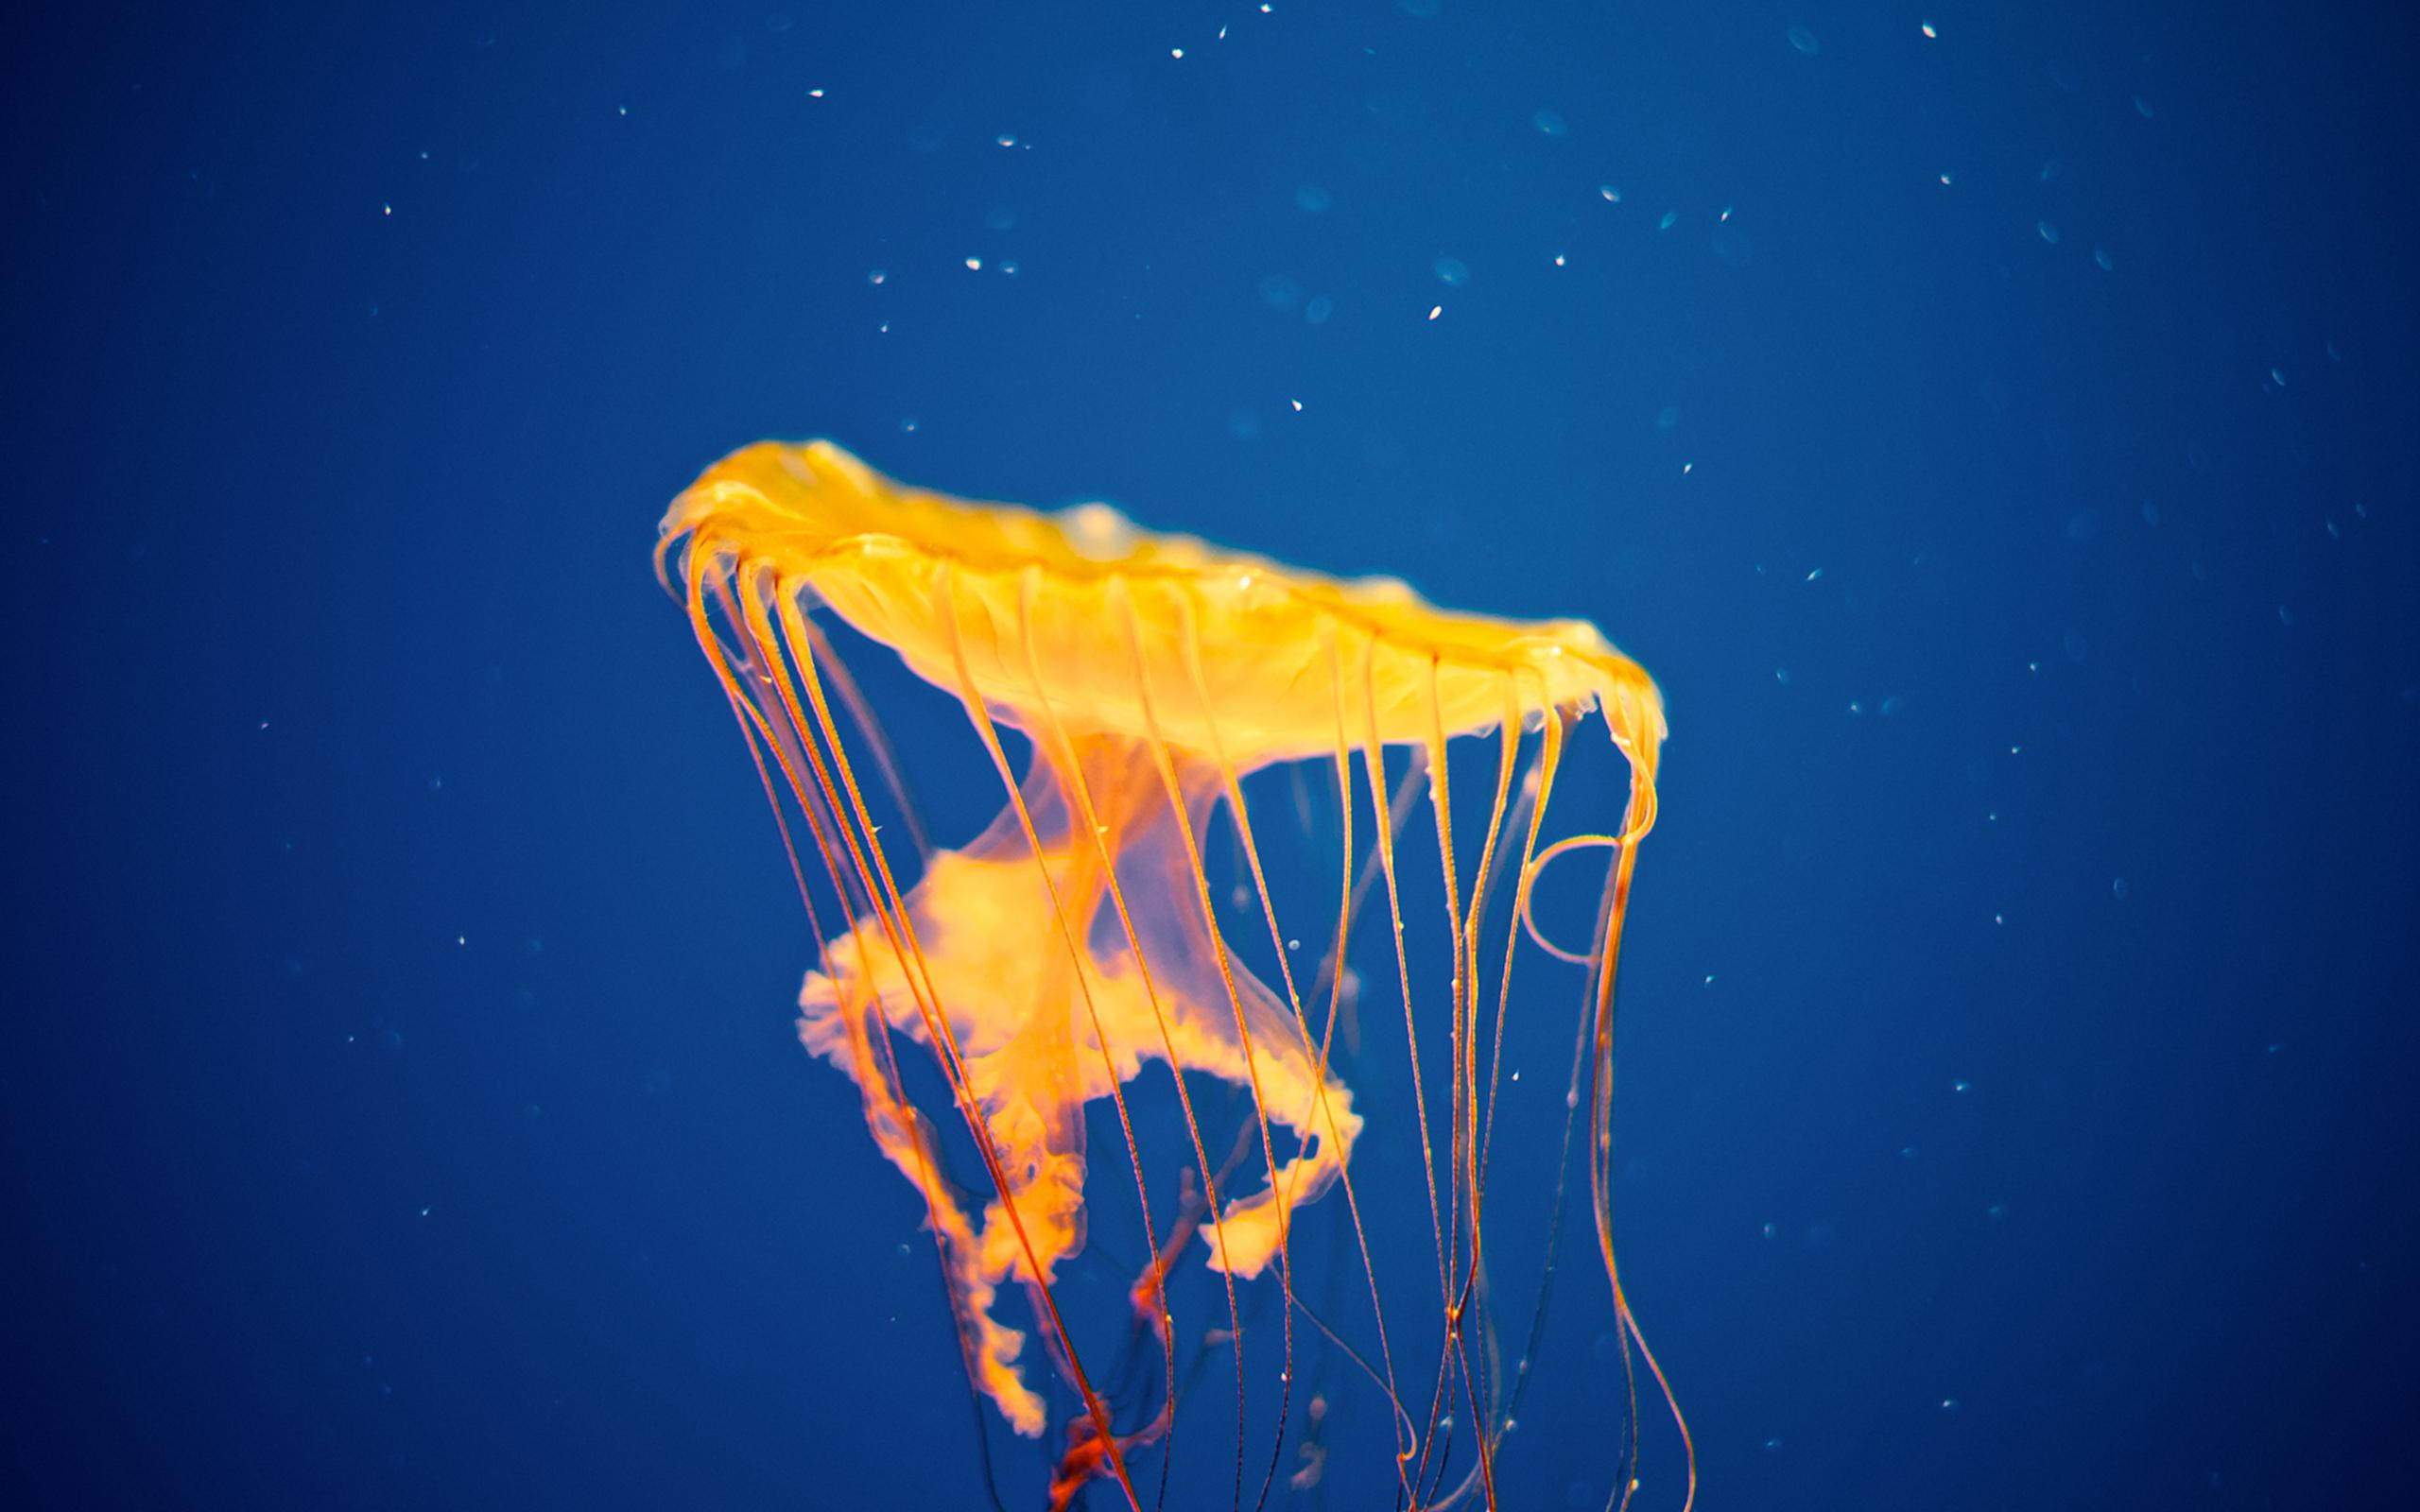 3d Tiger Wallpapers For Desktop Hd Jellyfish Underwater Ocean Sea Bokeh Jelly Hd Pictures